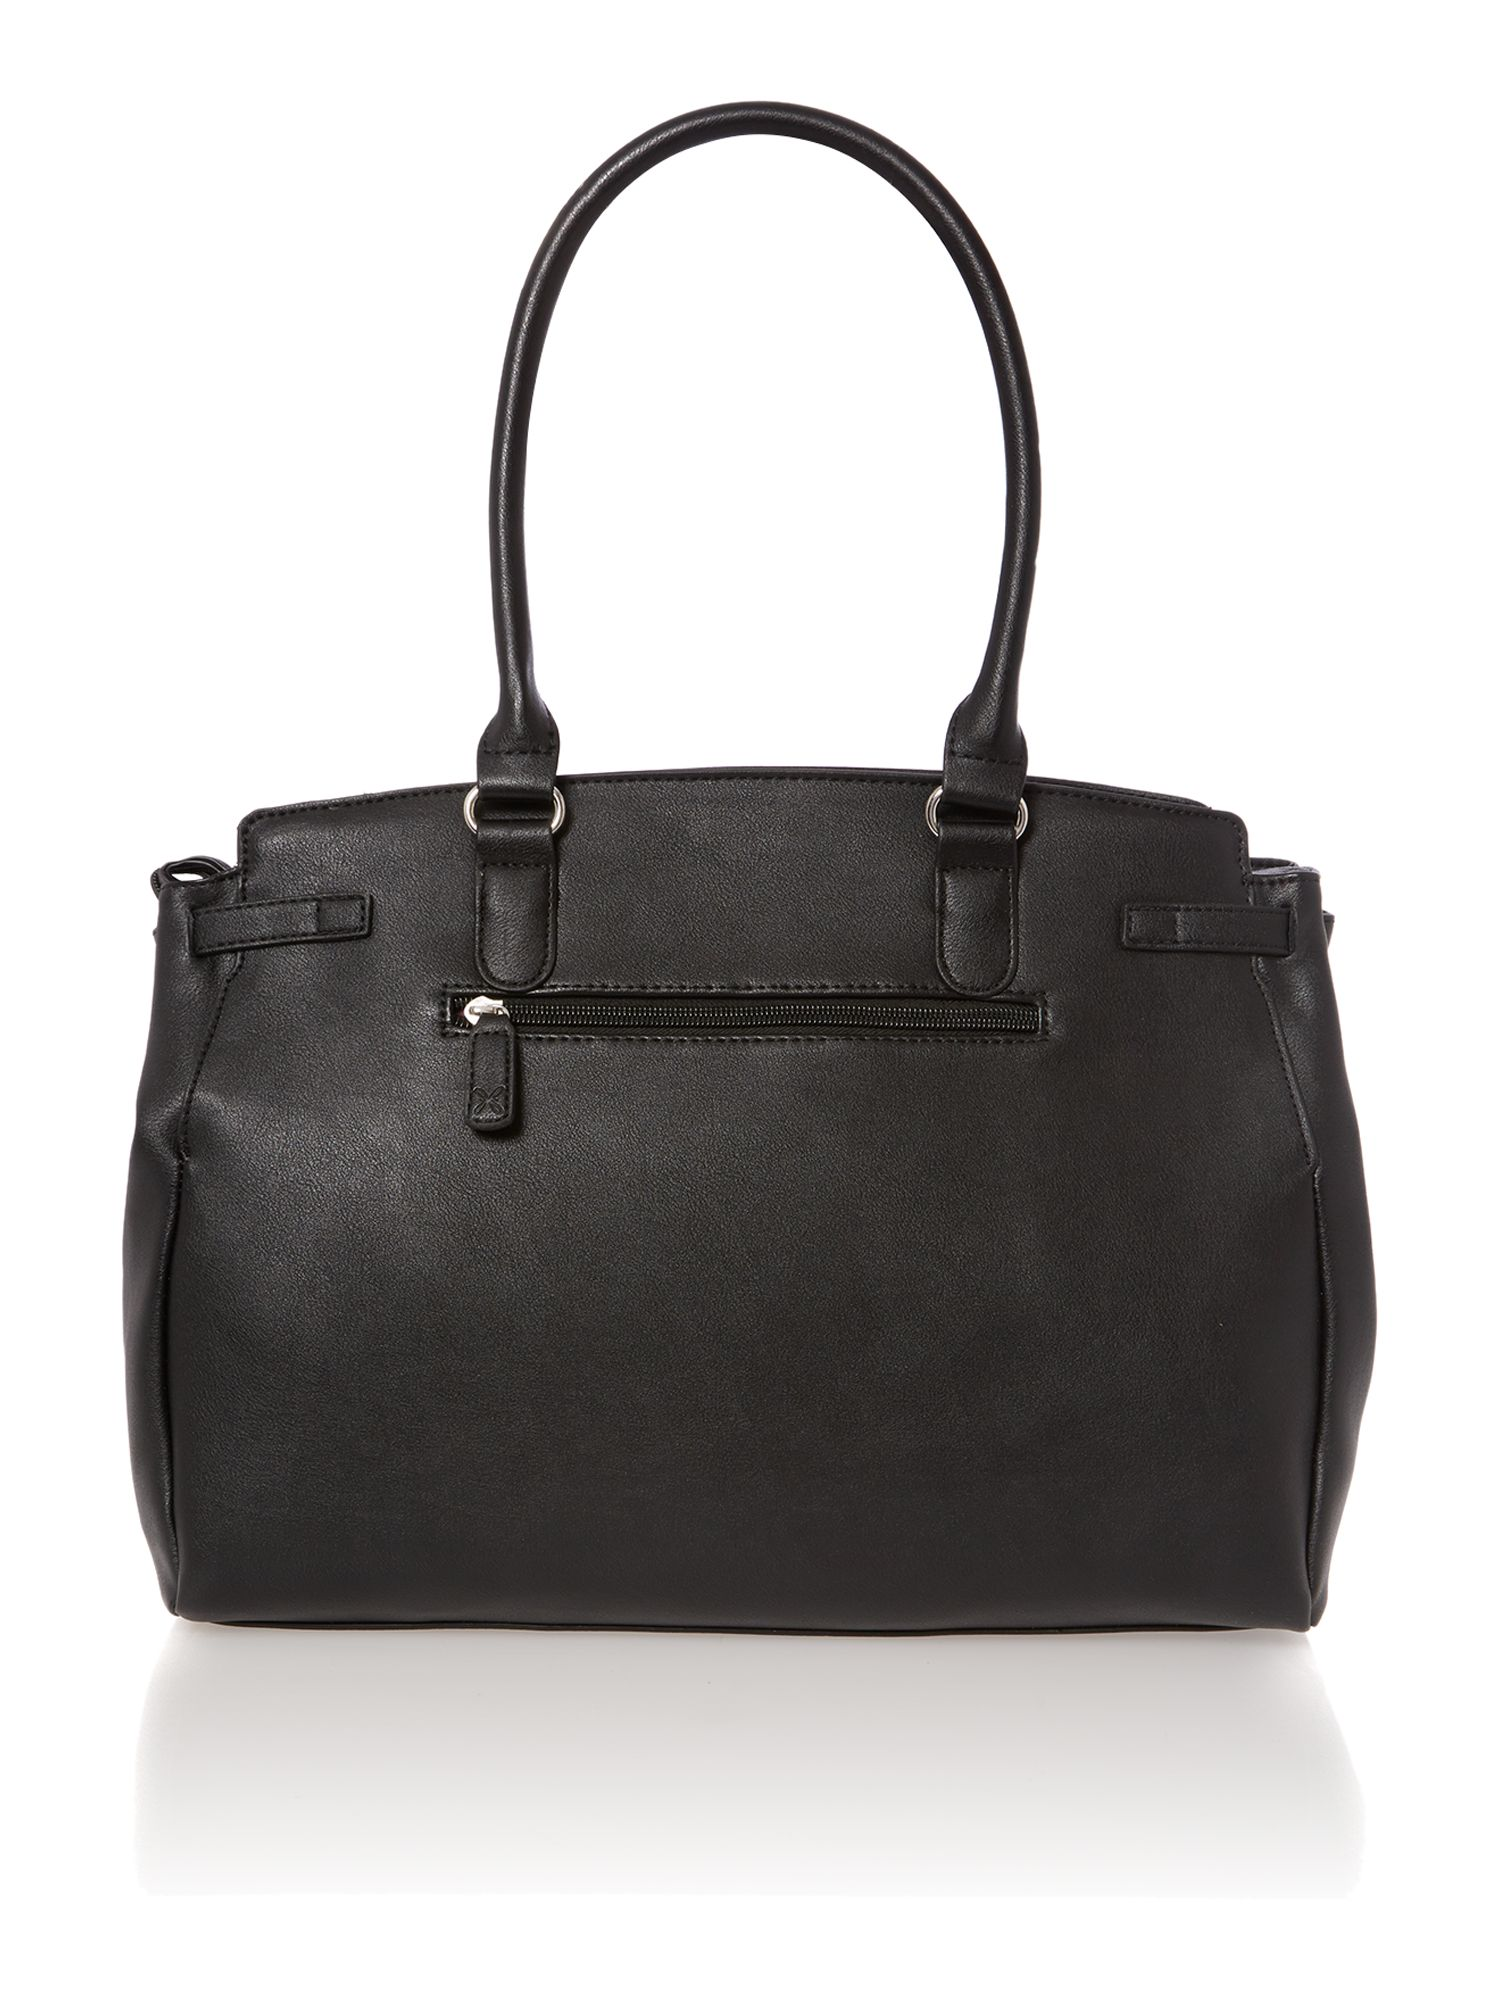 Lucy black tote bag